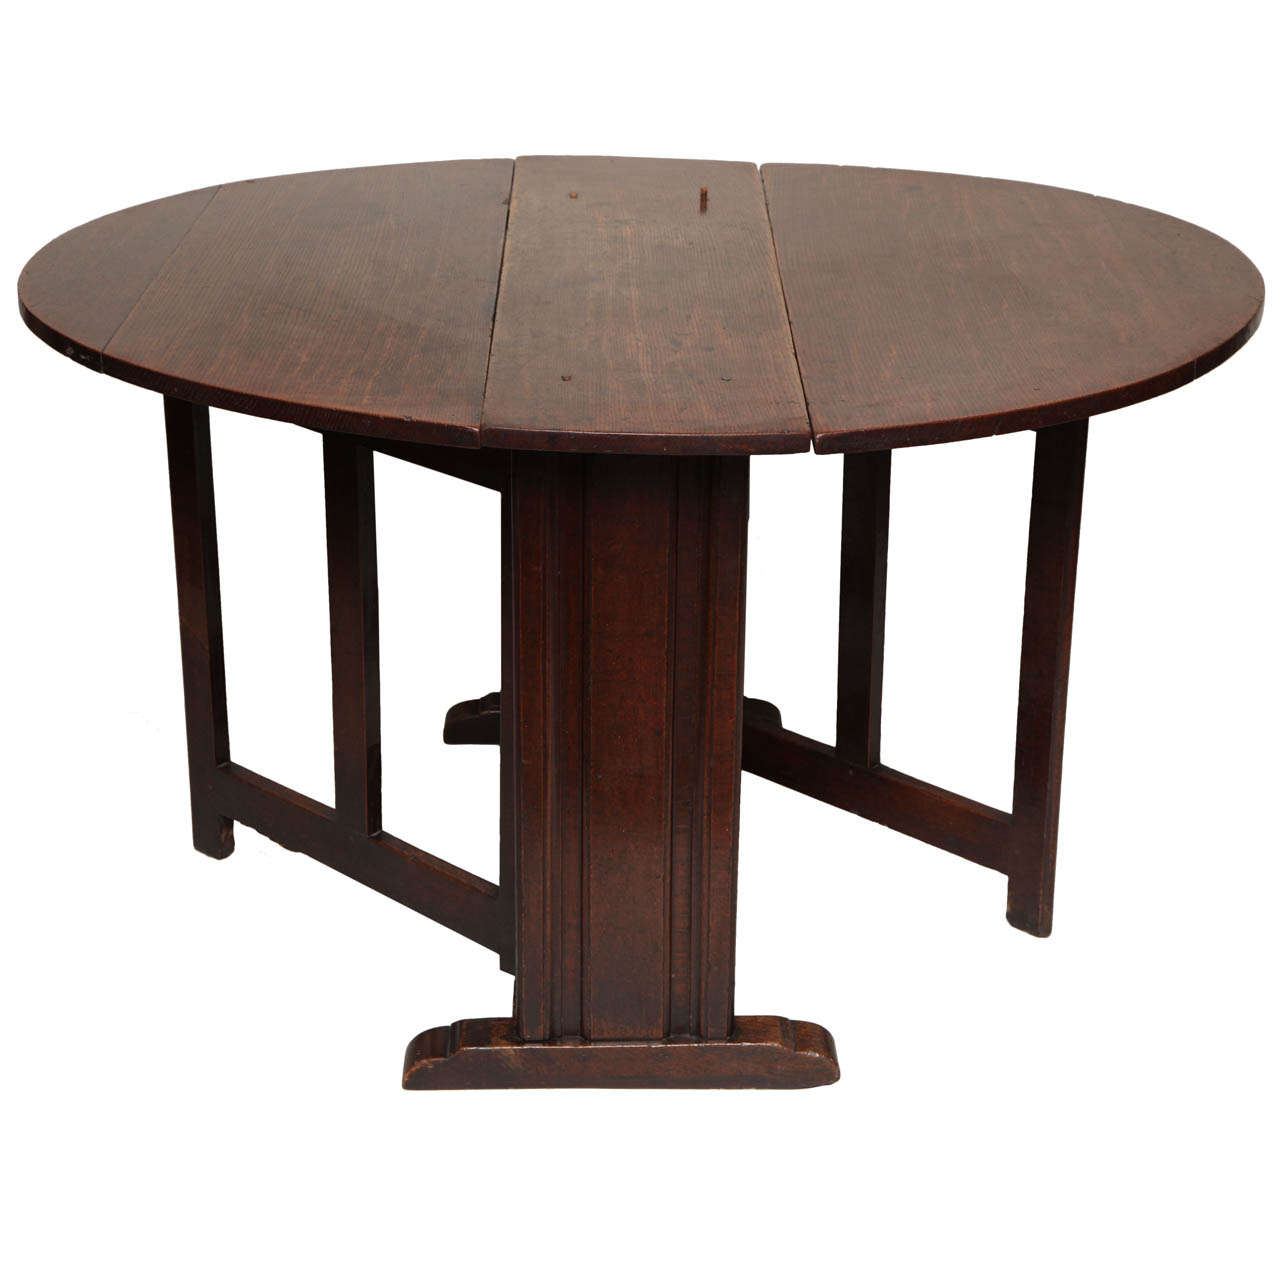 17th C English Or Welsh Oval Gate Leg Table Of Rare Form